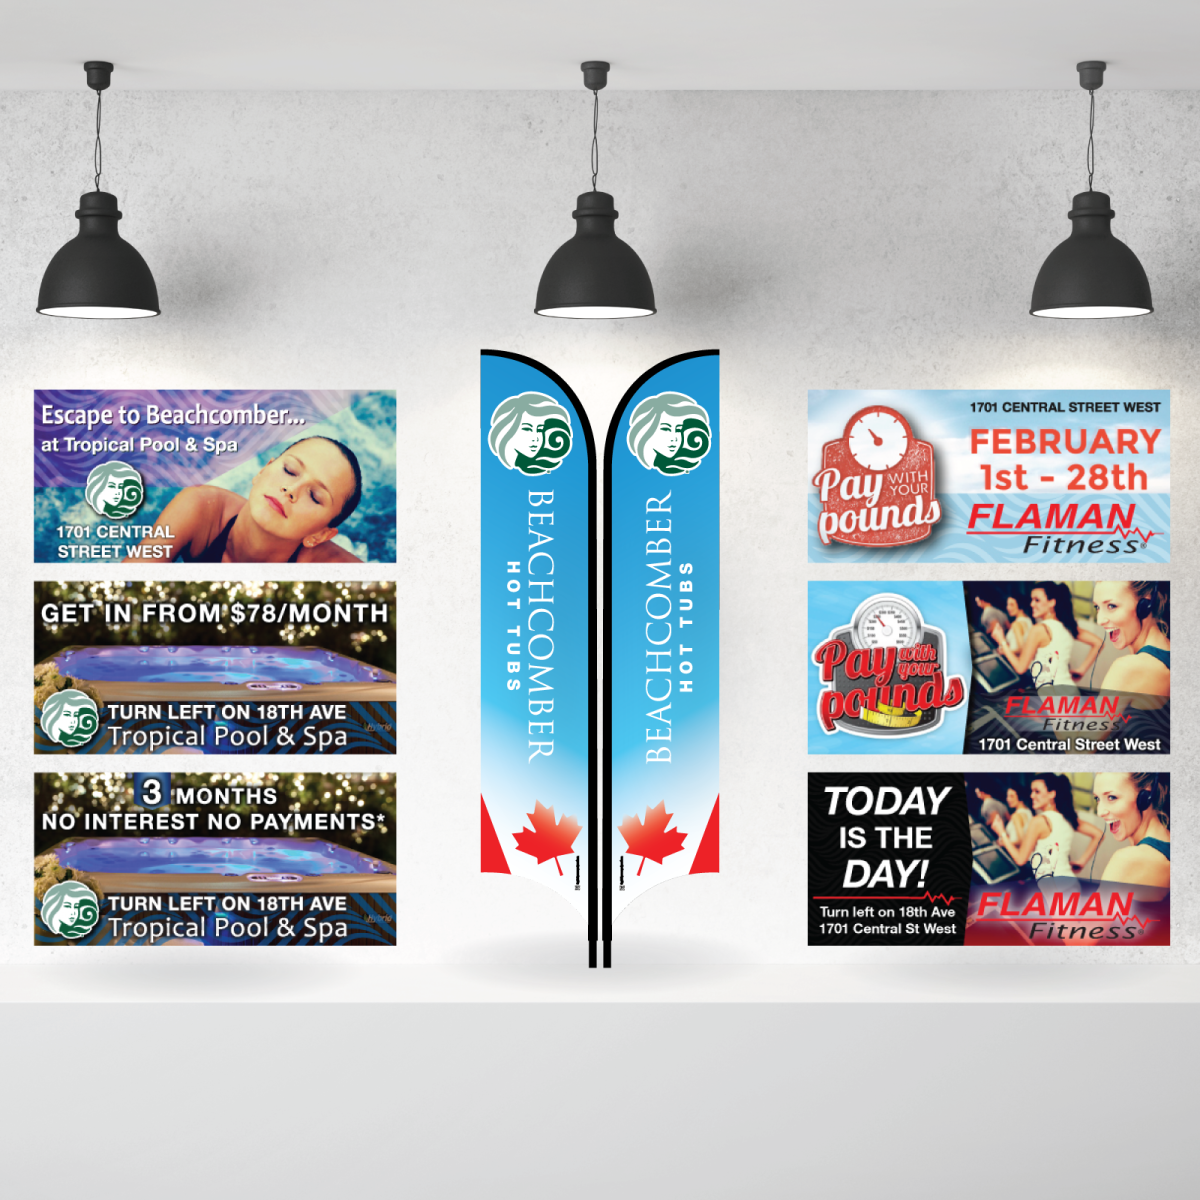 Tropical Pool and Spa Digital Billboard Ads and Banner